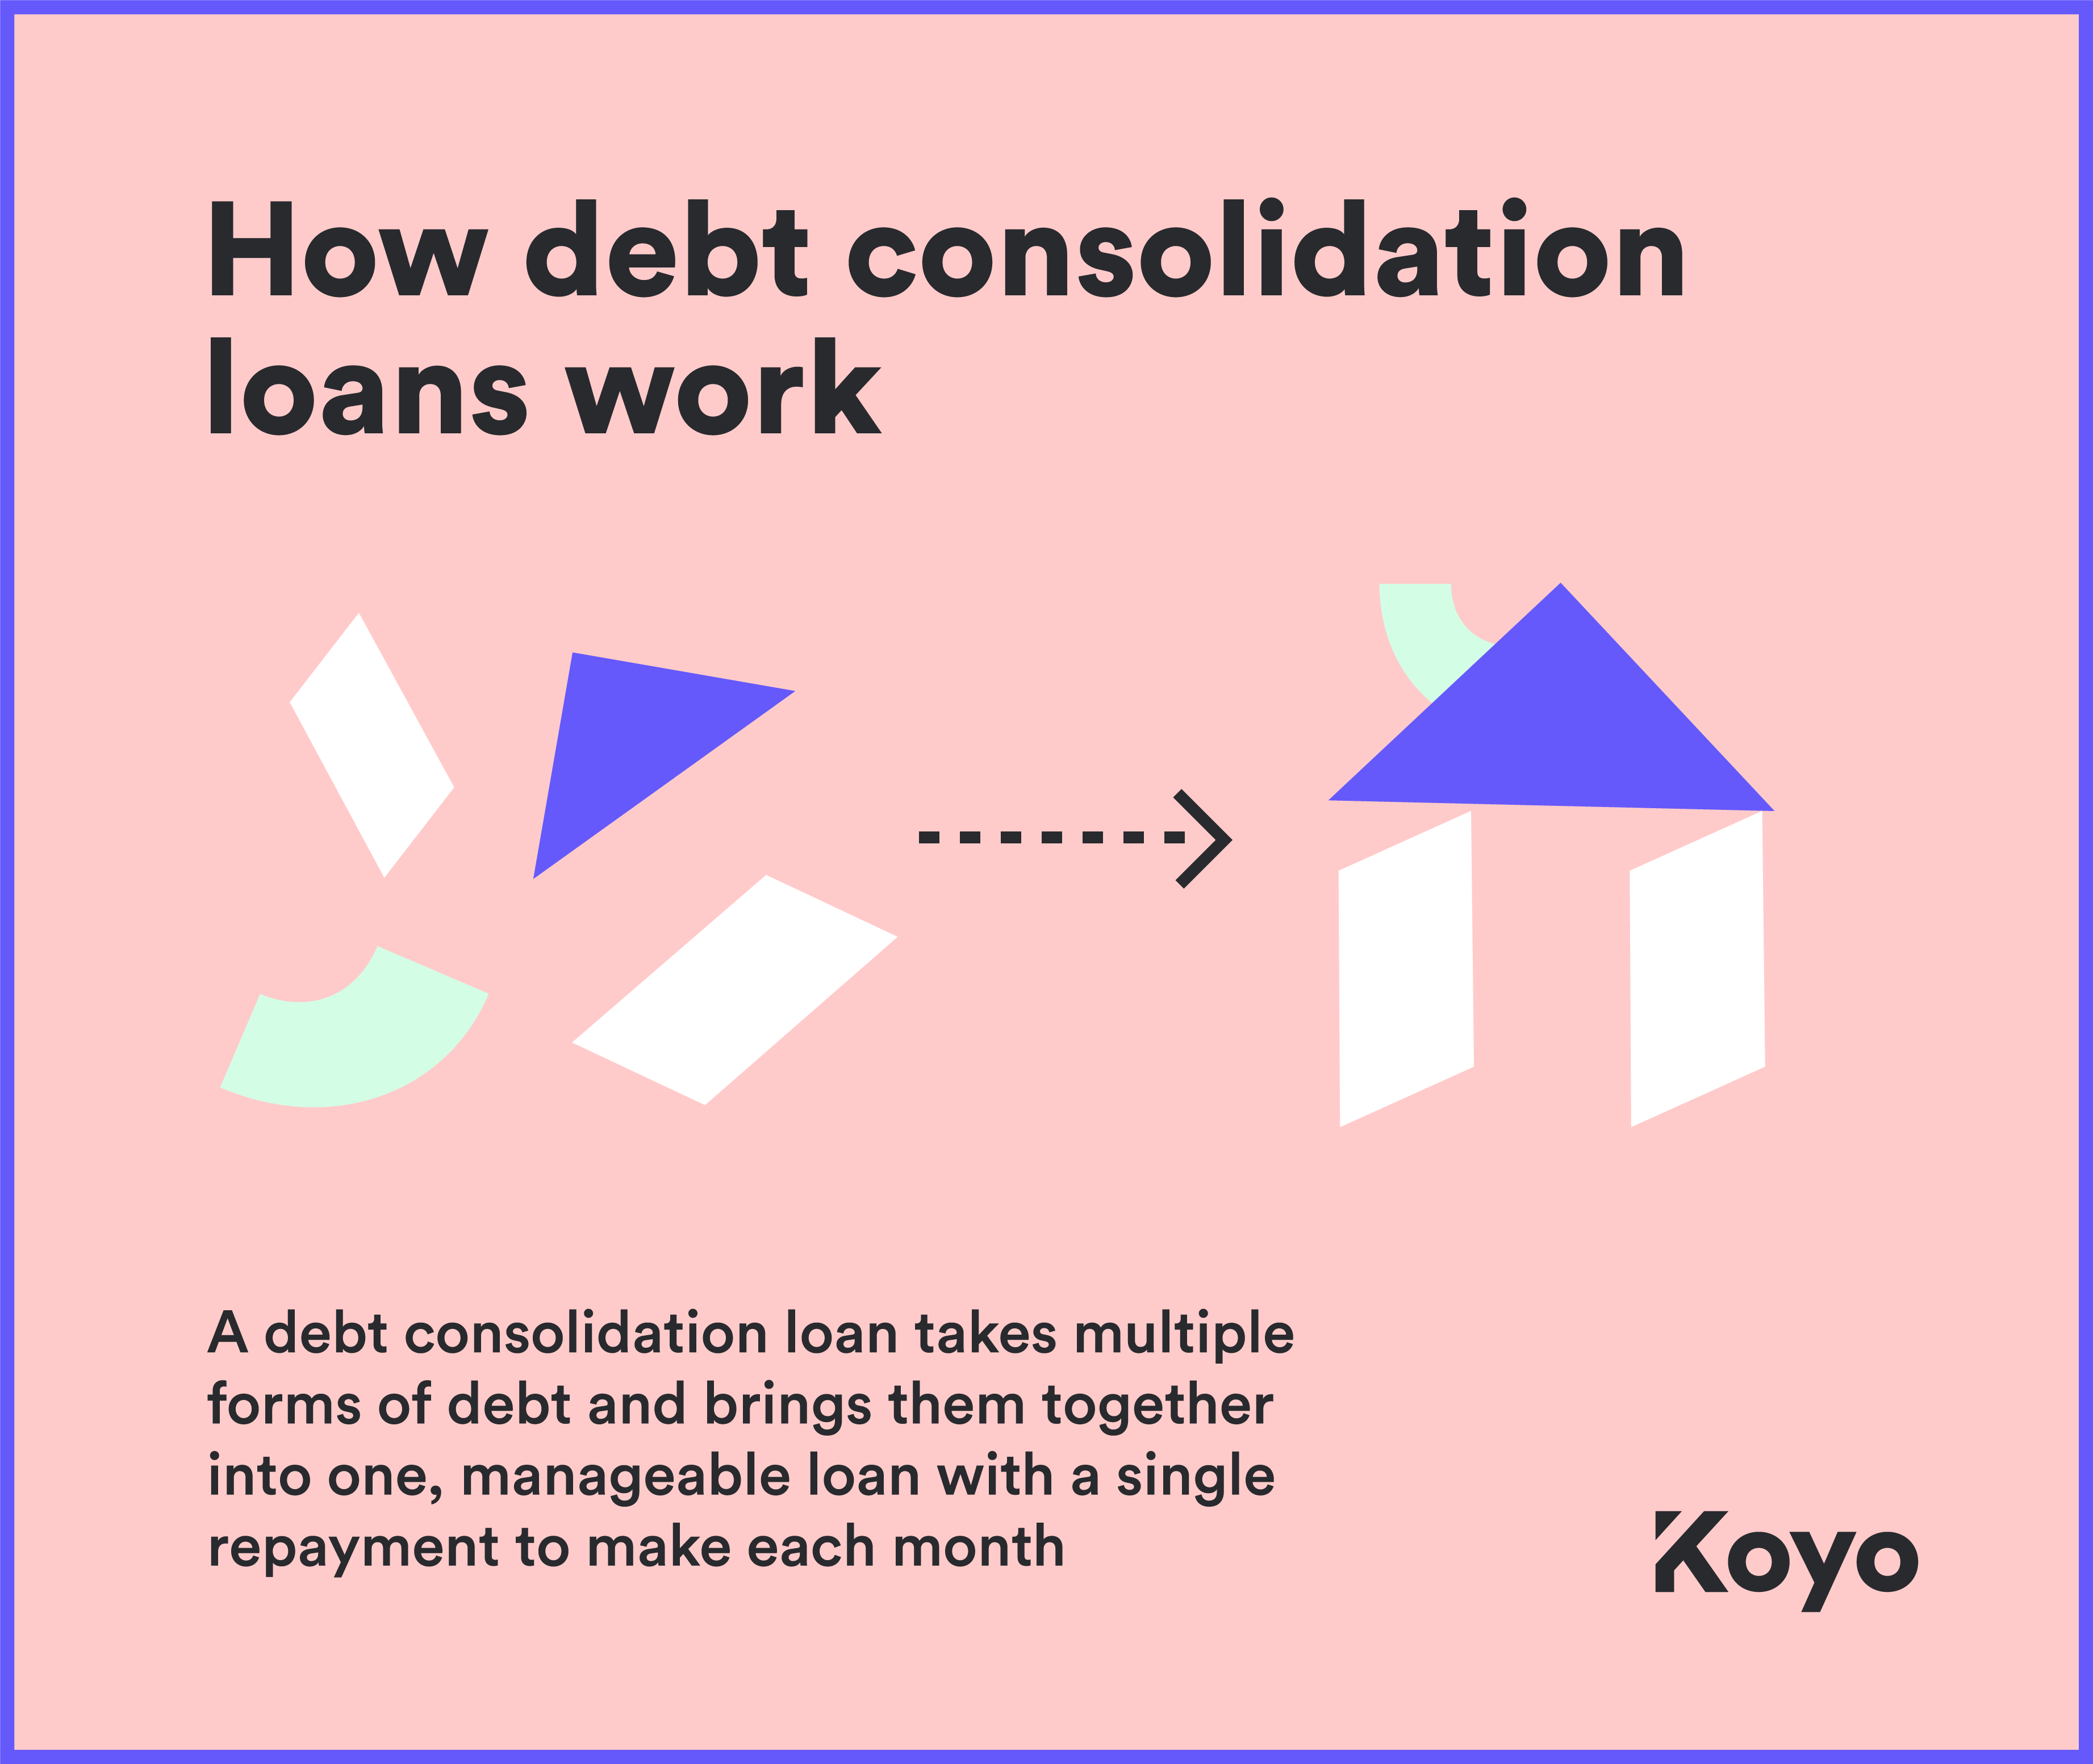 Image showing how a debt consolidation loan takes multiple forms of debt and brings them together into one